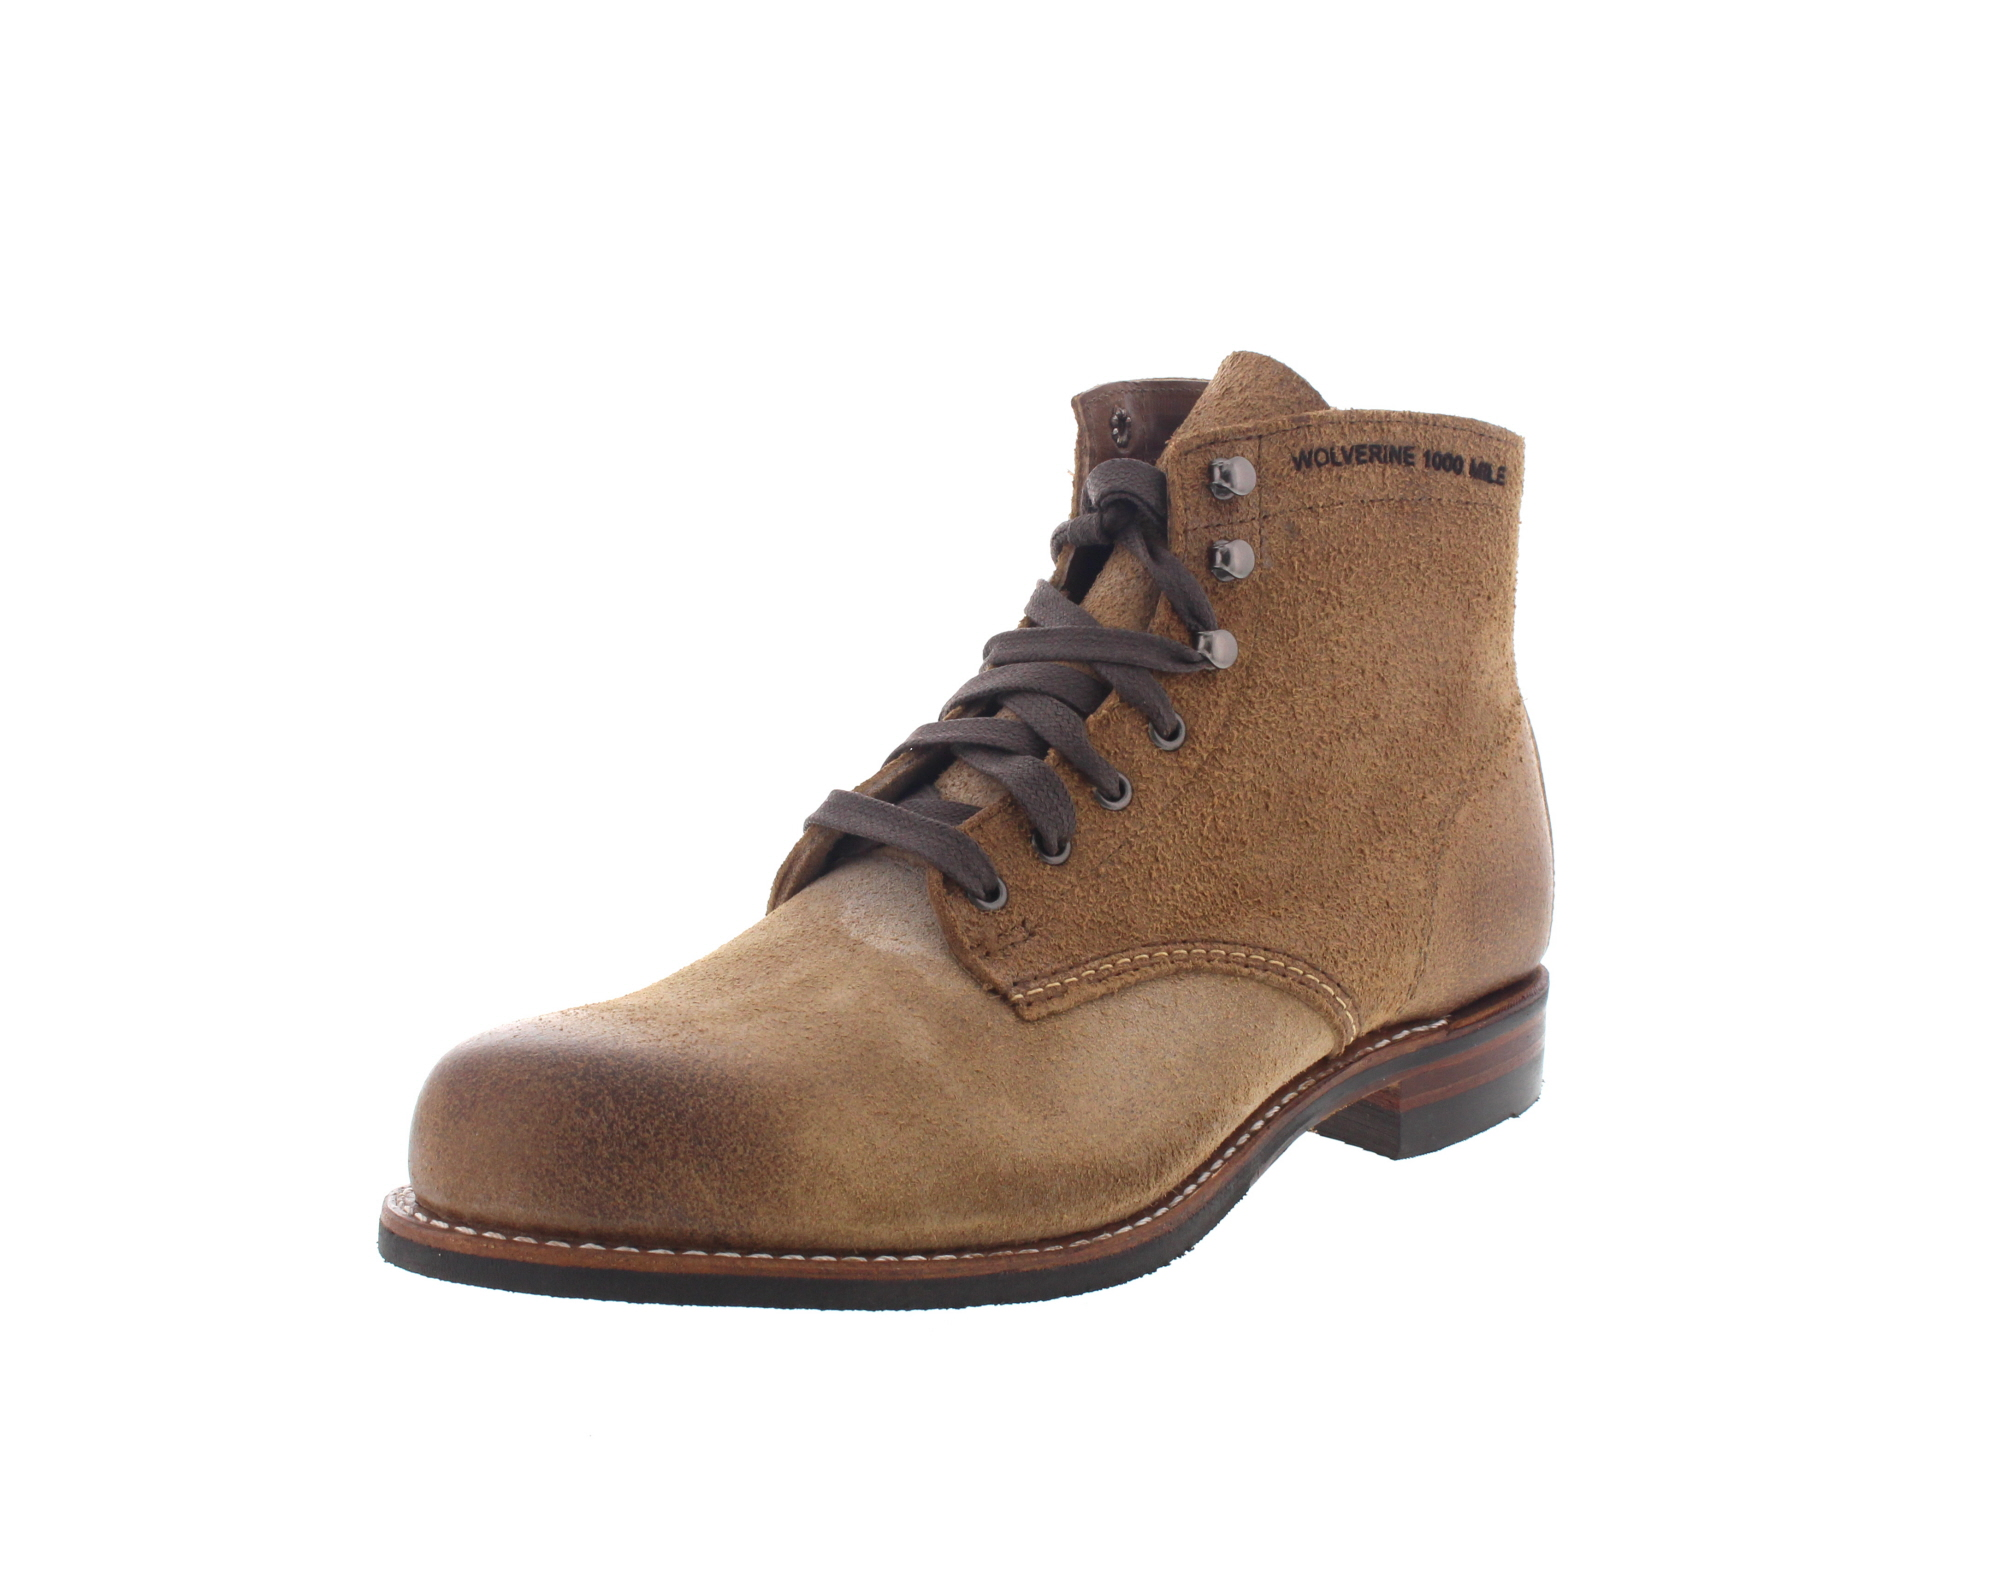 WOLVERINE 1000 MILE - Premium-Boots MORLEY - natural-0